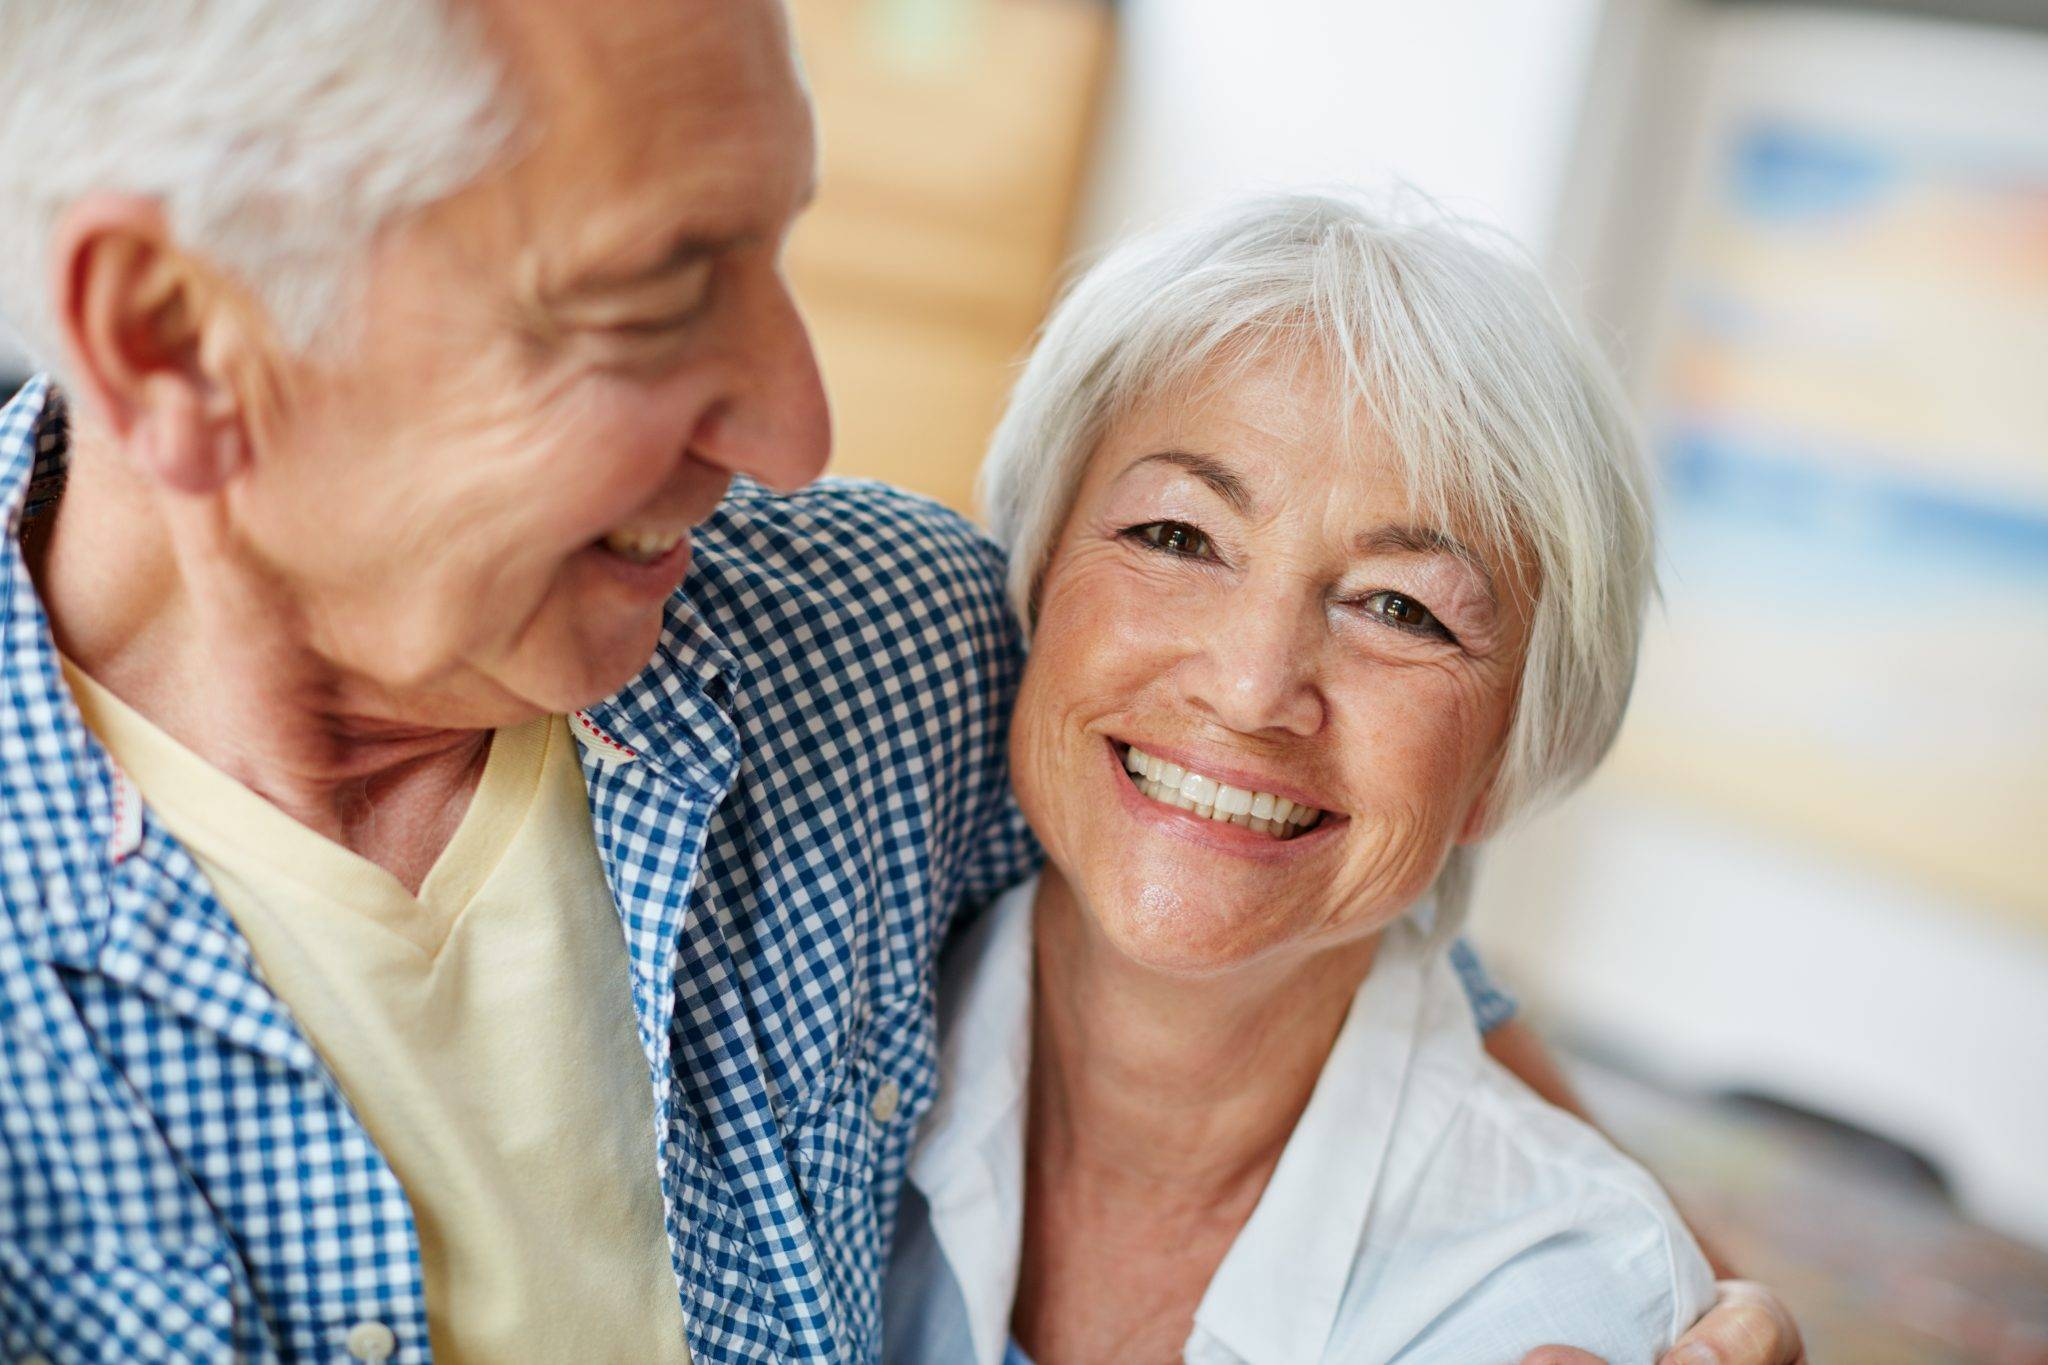 Seniors Online Dating Service For Relationships